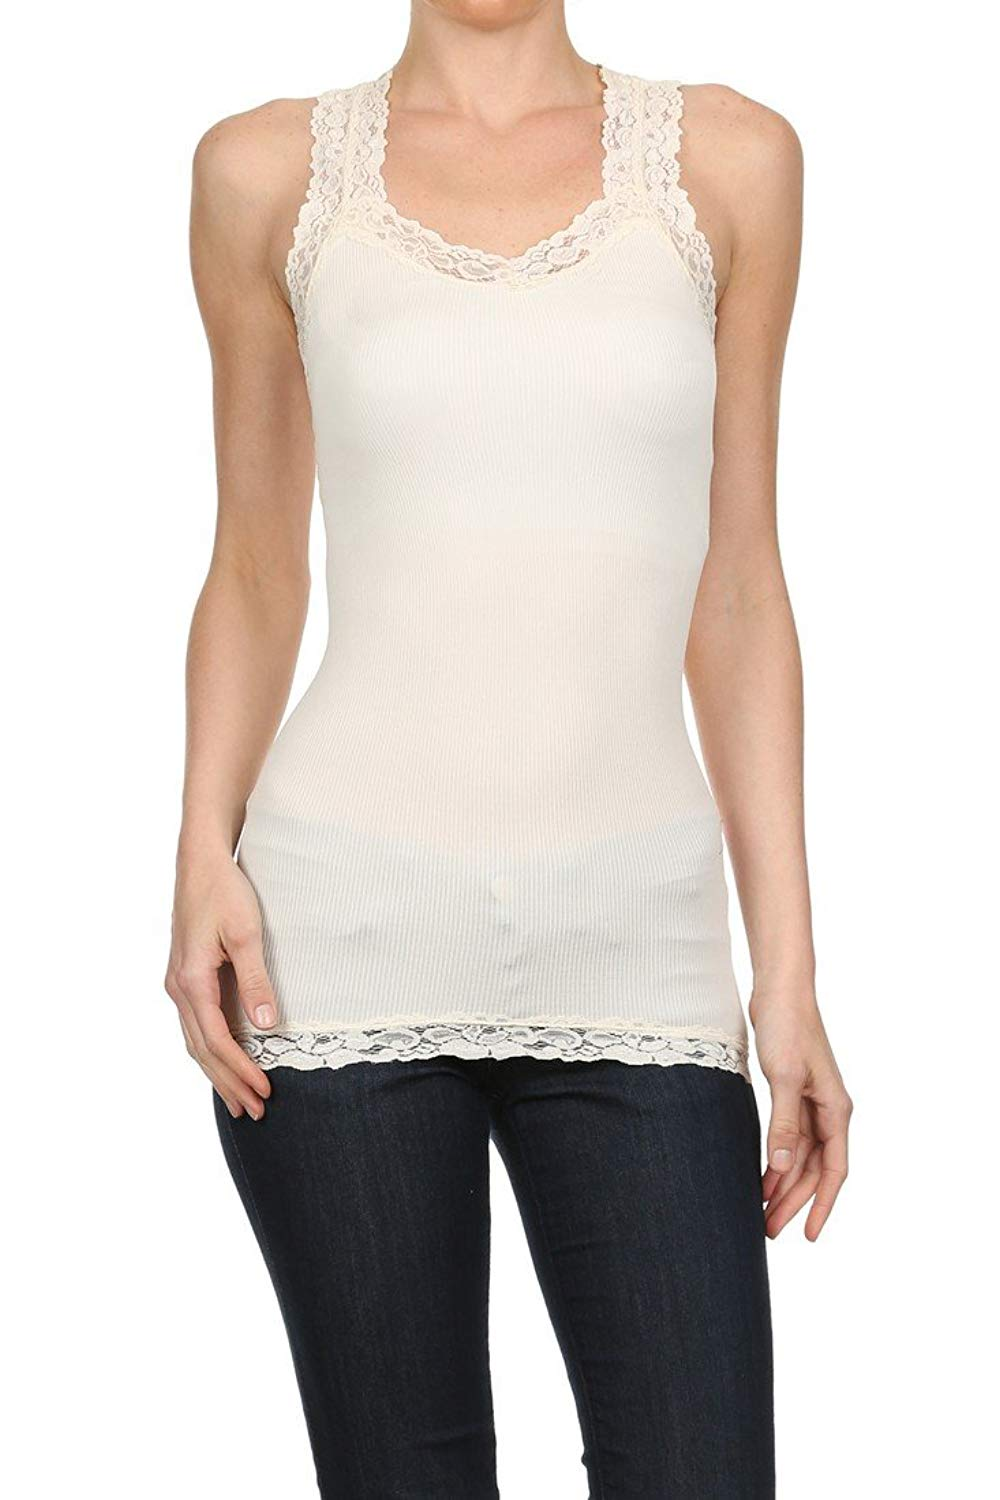 670d60e5e407a8 Get Quotations · ICONOFLASH Stretchy Nylon Racerback Tank Top with Stretch  Lace Trim